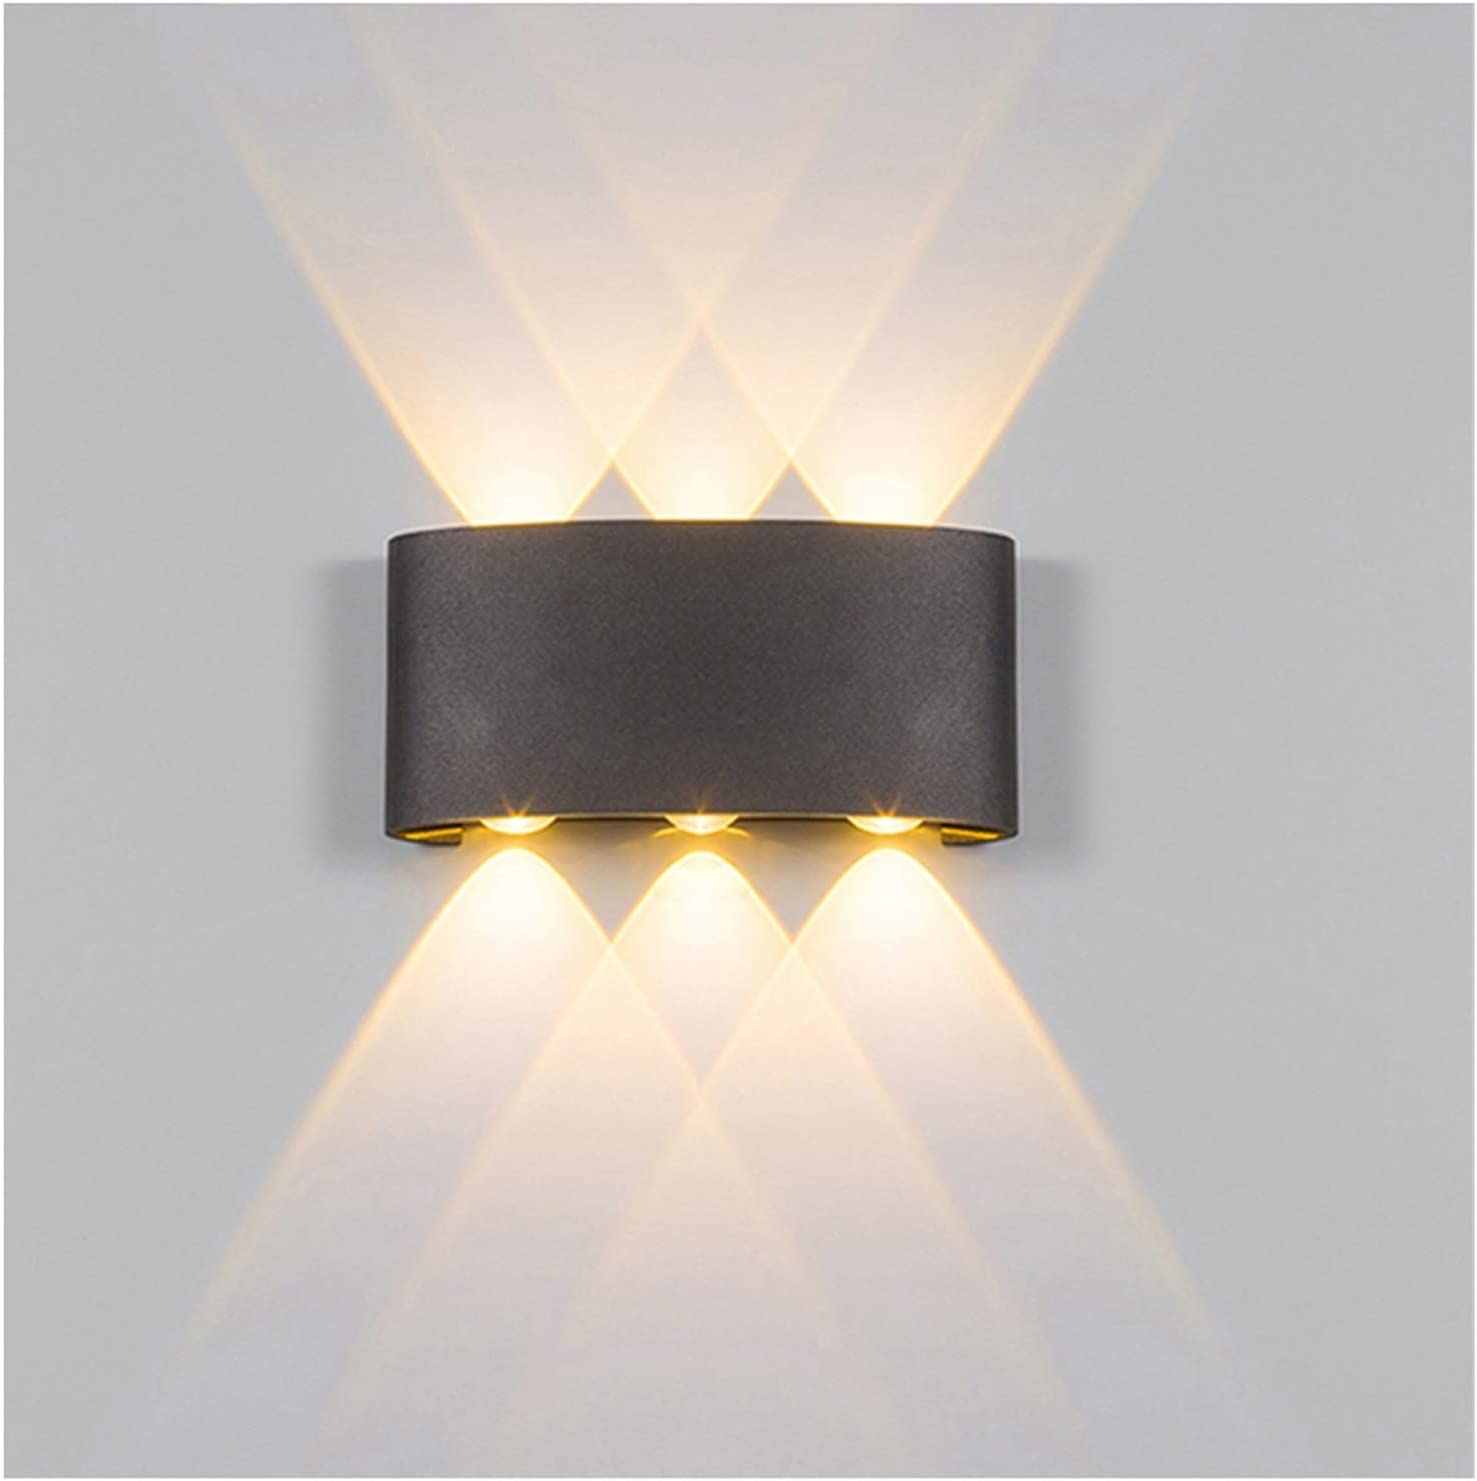 wall lamp 2W 4W 6W Max 77% OFF 8W LED New color Waterproof Wall N Outdoor Light Modern